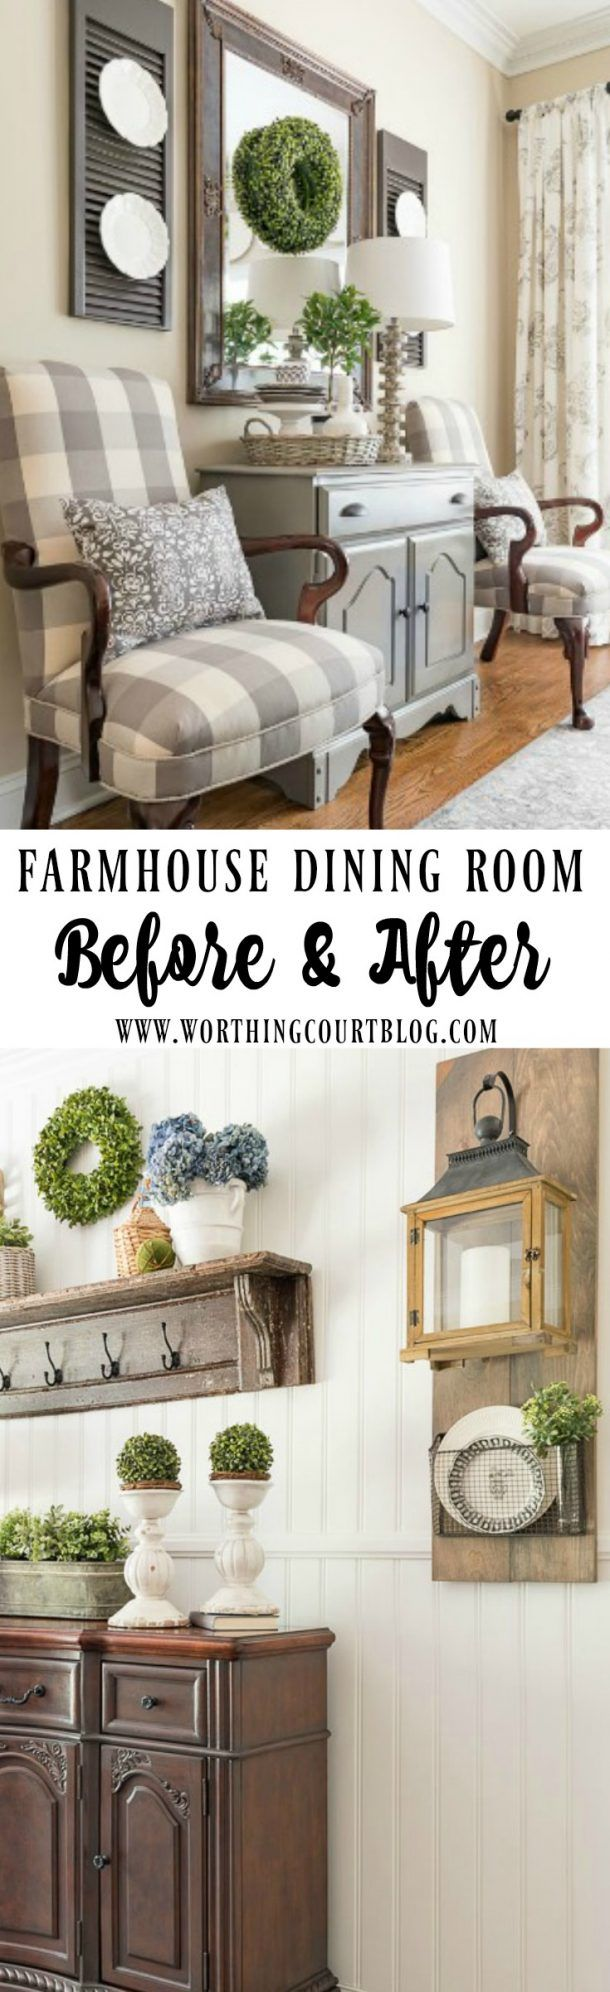 Best 25+ Dining room wall decor ideas on Pinterest | Dining wall ...